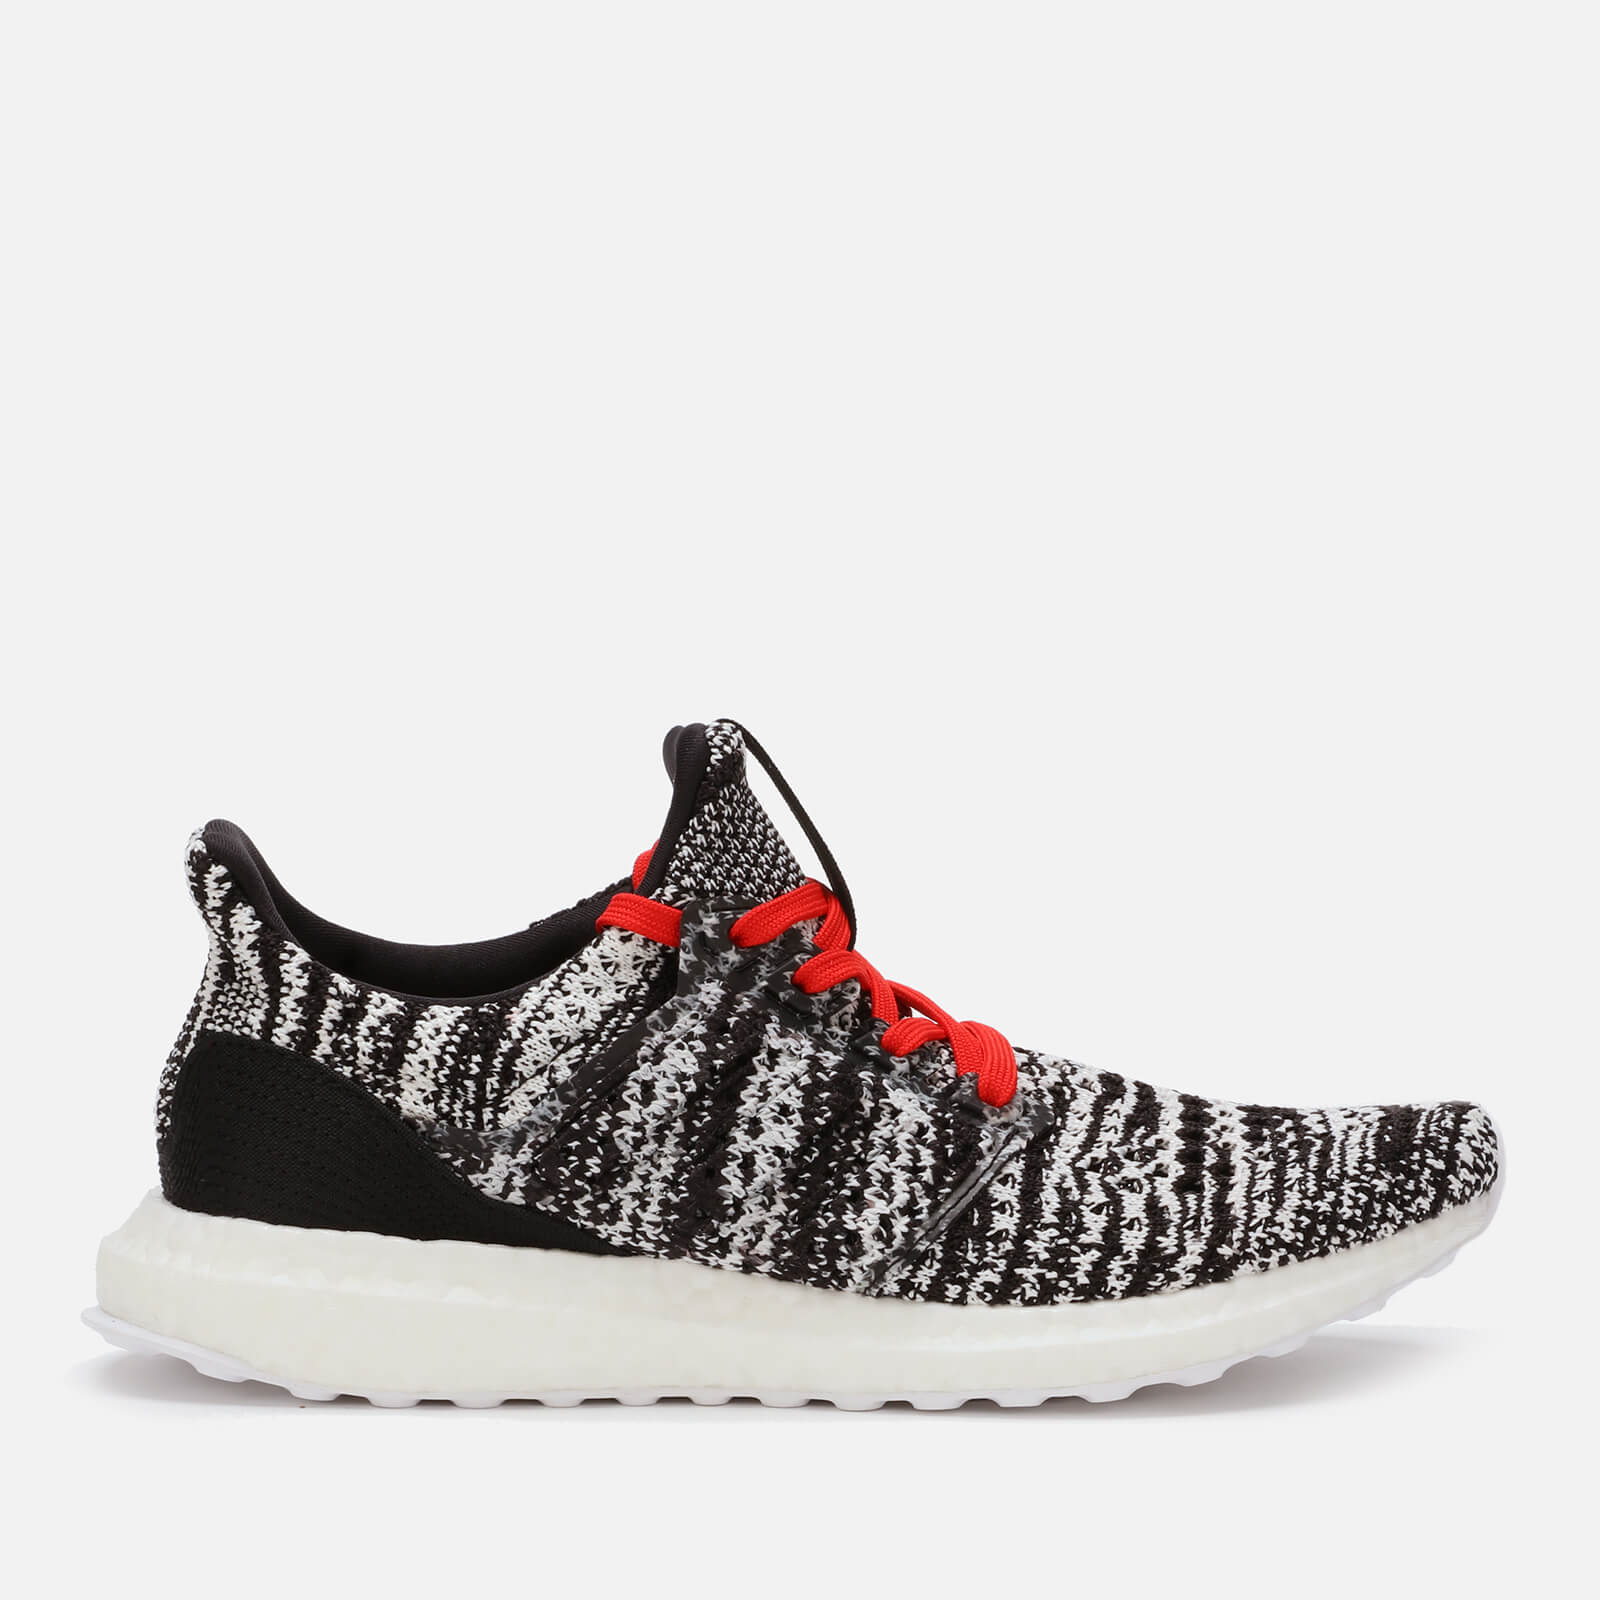 6734878d4ba2f adidas X Missoni Ultraboost Clima Trainers - Core Black FTWR White Active  Red - Free UK Delivery over £50